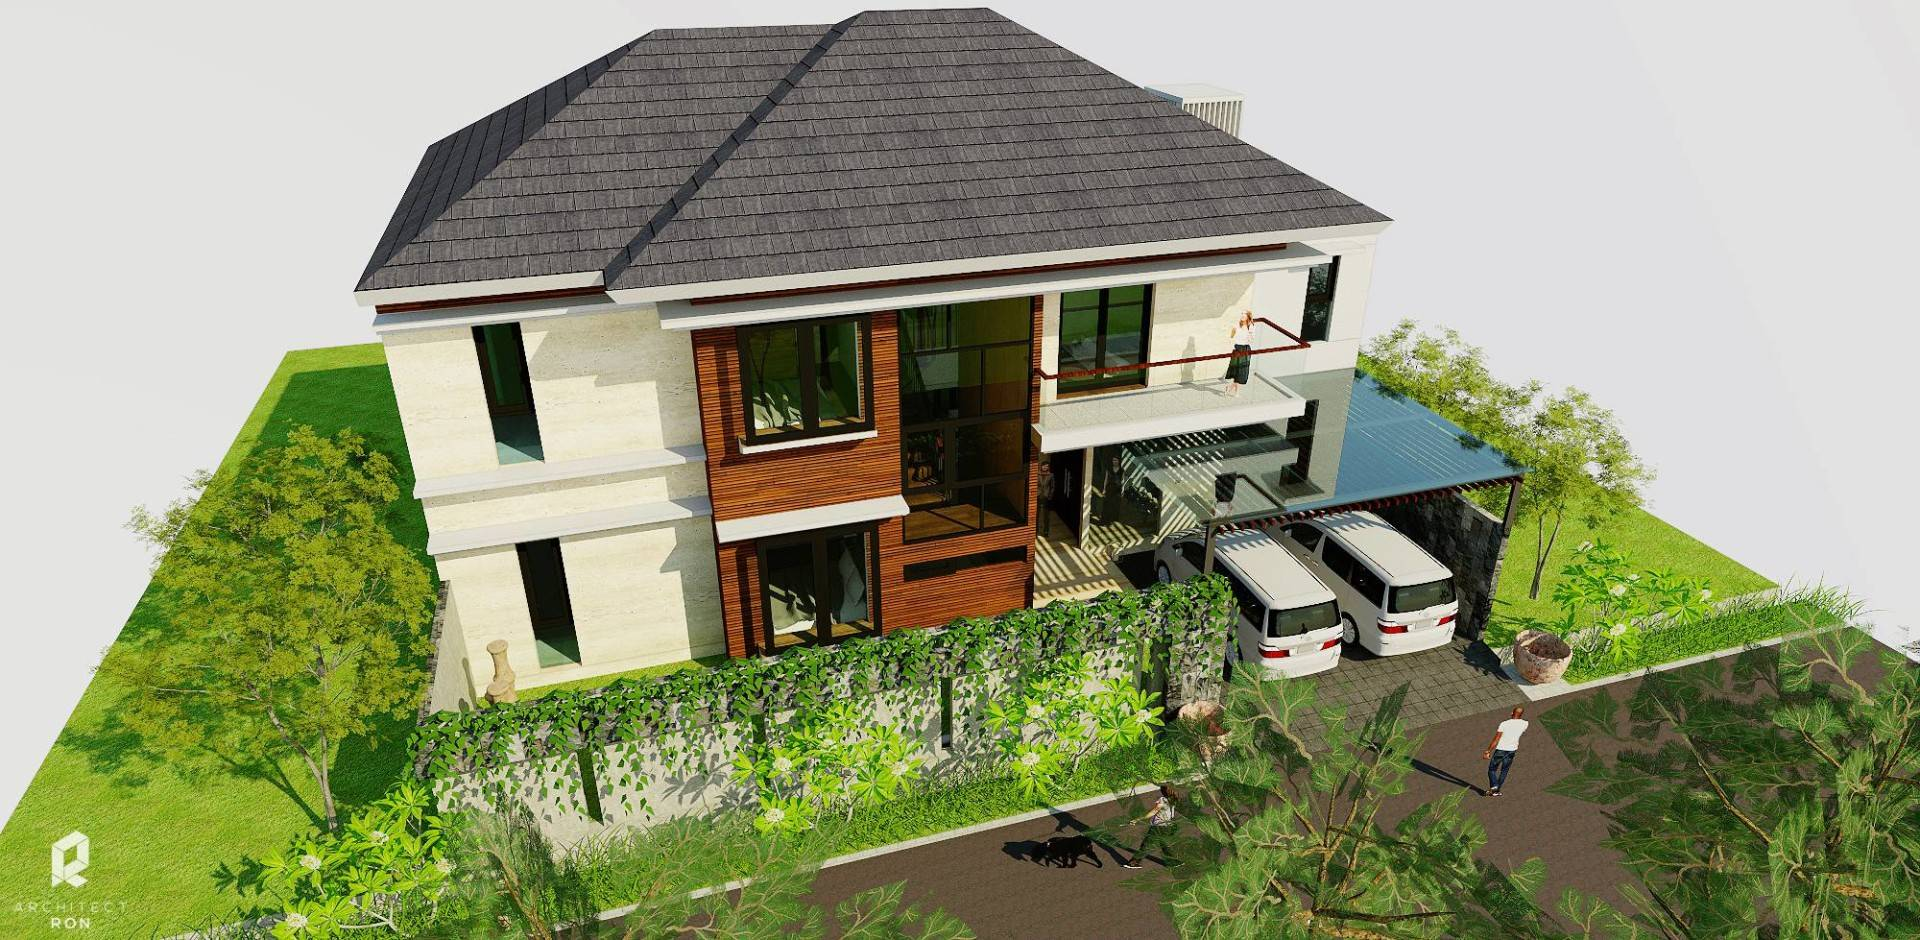 Architectron Dp House At Pekalongan Middle Java Middle Java Front View   2046